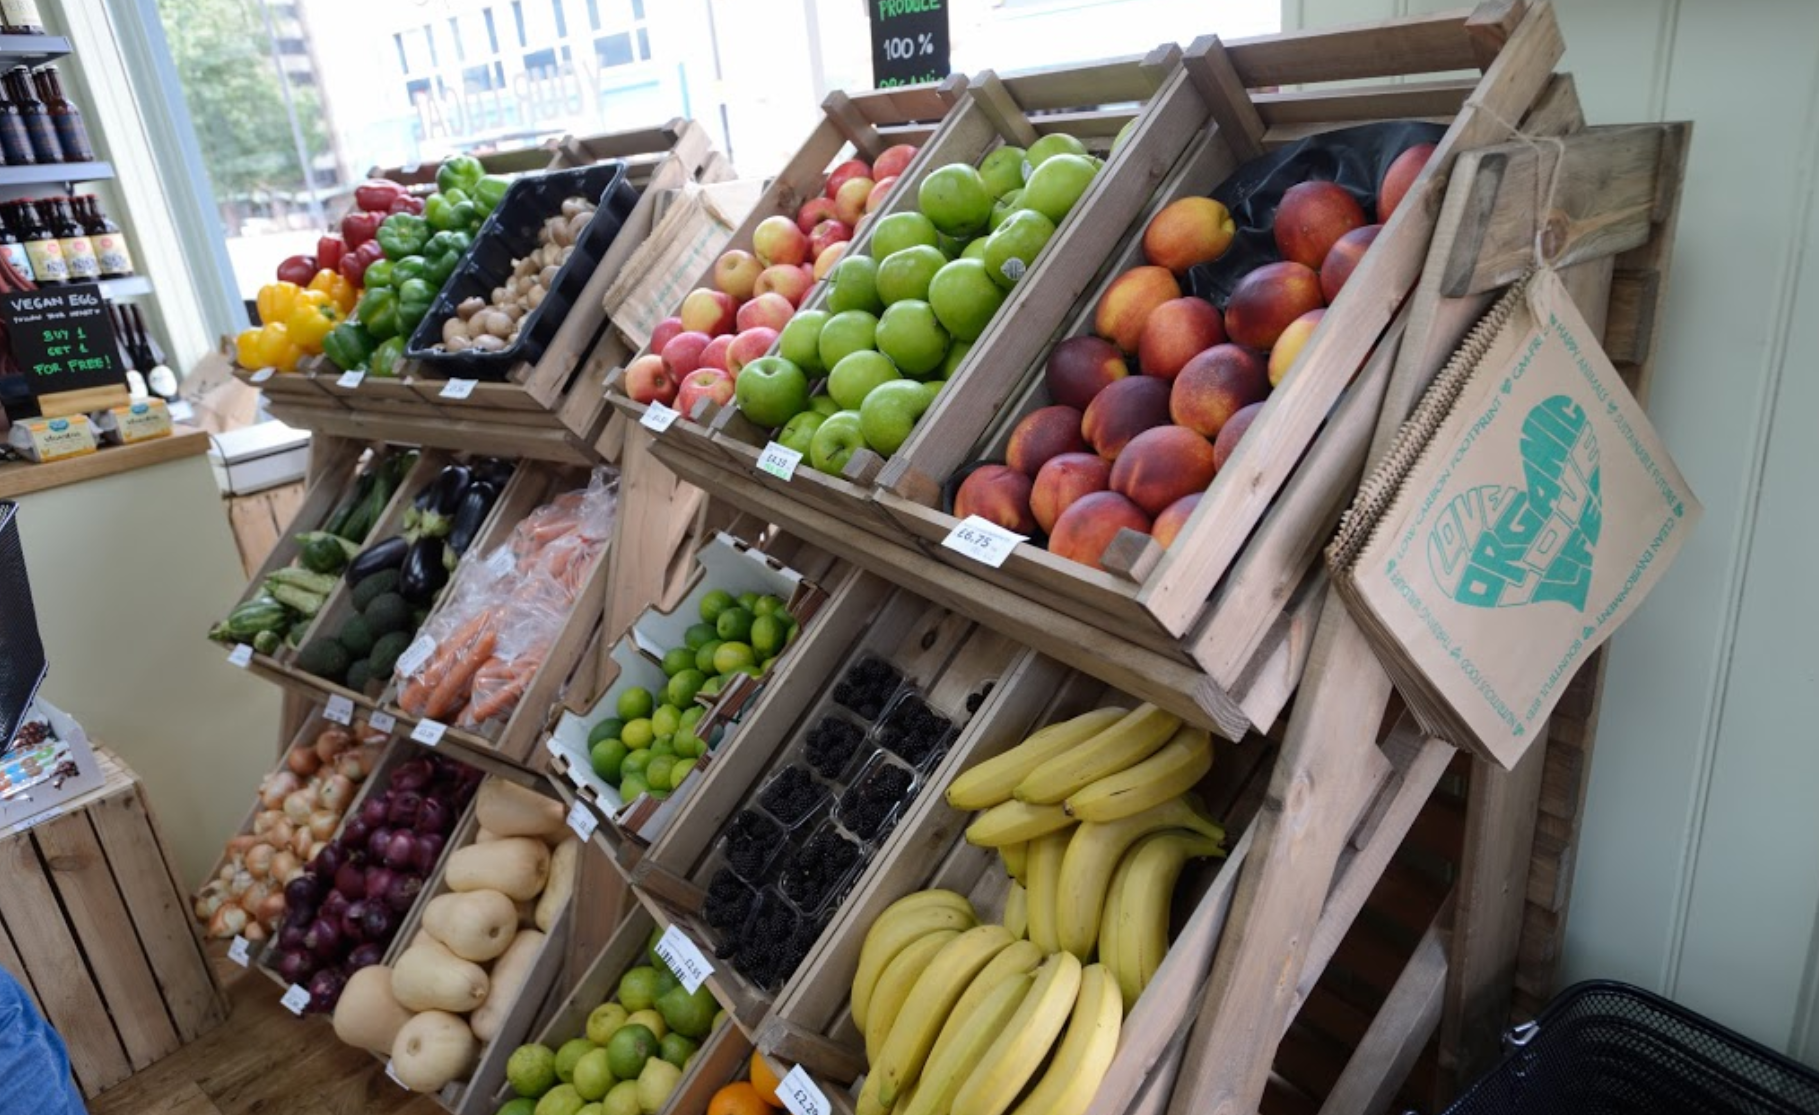 From all the vegan treats to good old wholesome fruit and veg, GreenBay is a one-stop shop for vegan eating.